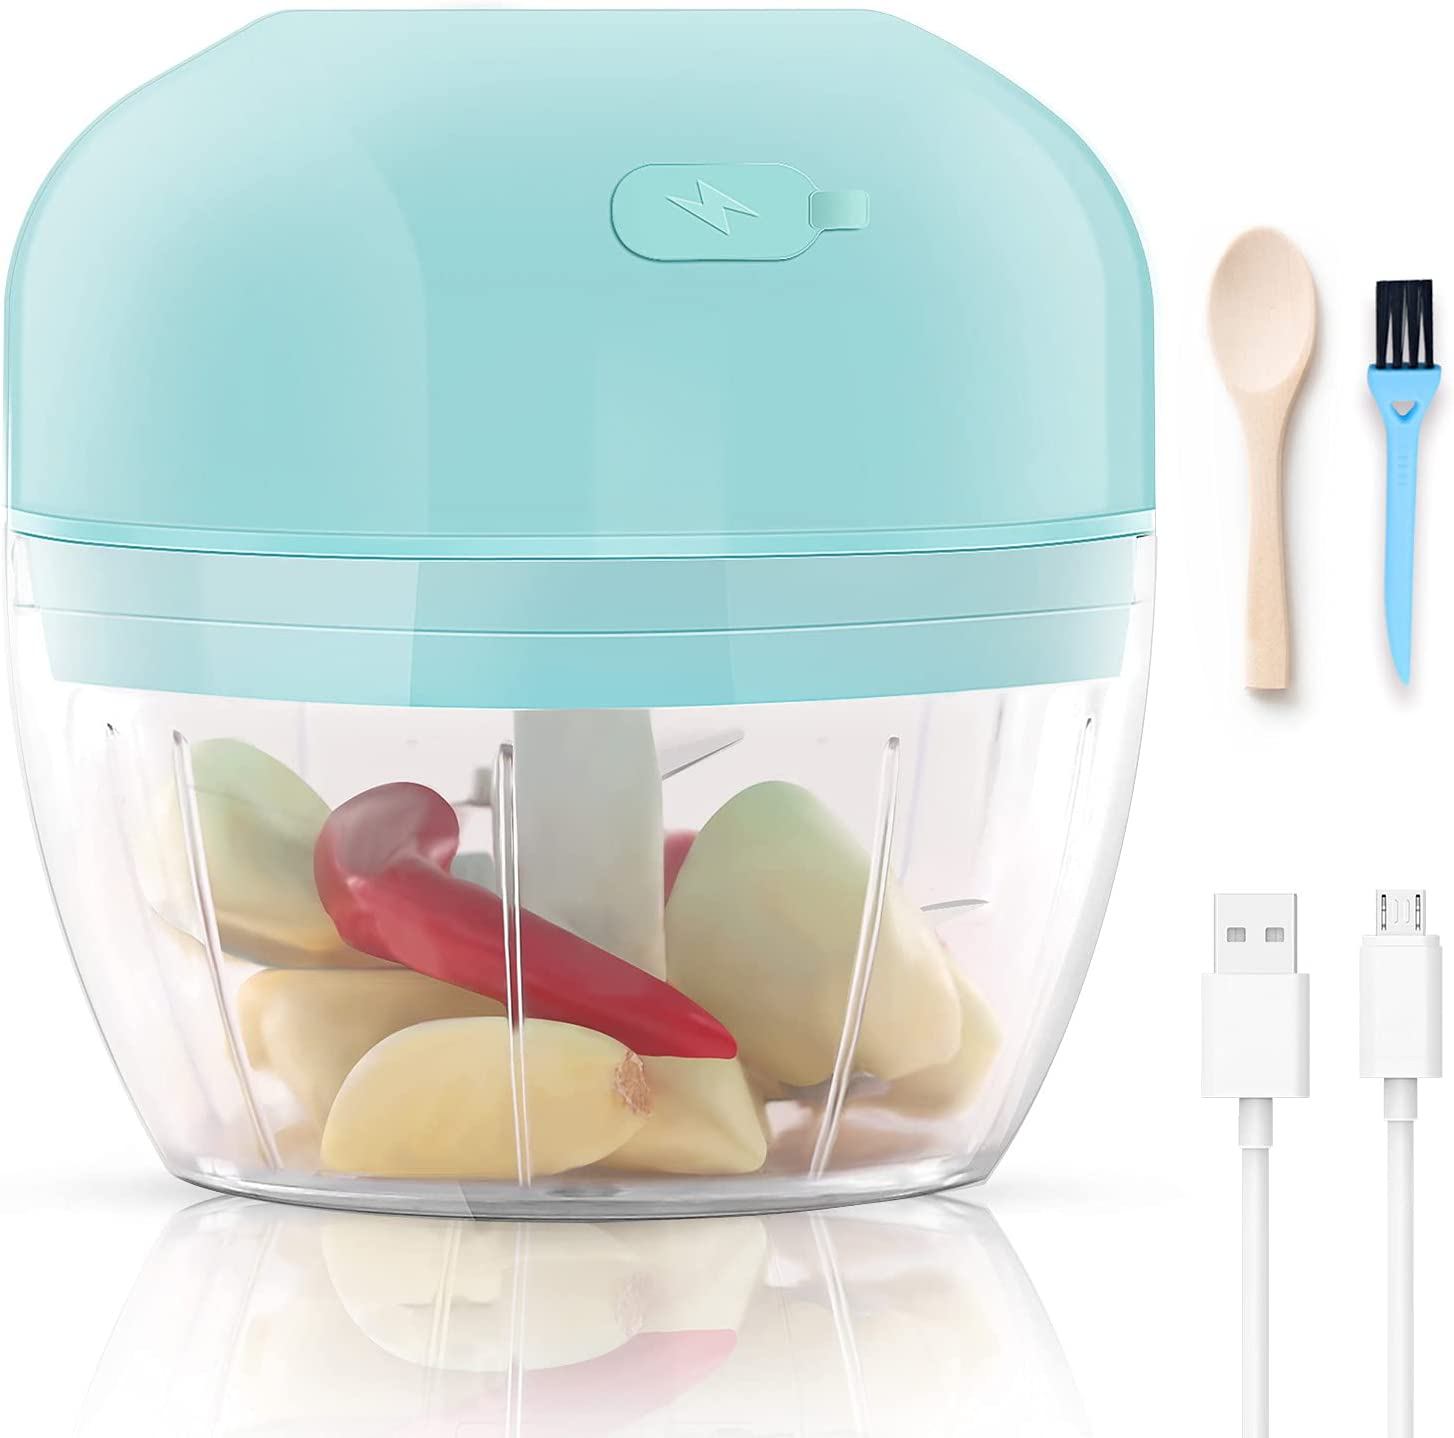 Mini Garlic Chopper, Electric Mincer, Food Dicers, Food Slicer Crusher, Wireless, Rechargeable & Portable for Garlic/Chili/Vegetables/Onions/Nuts/Pepper/Ginger Gift for Mom